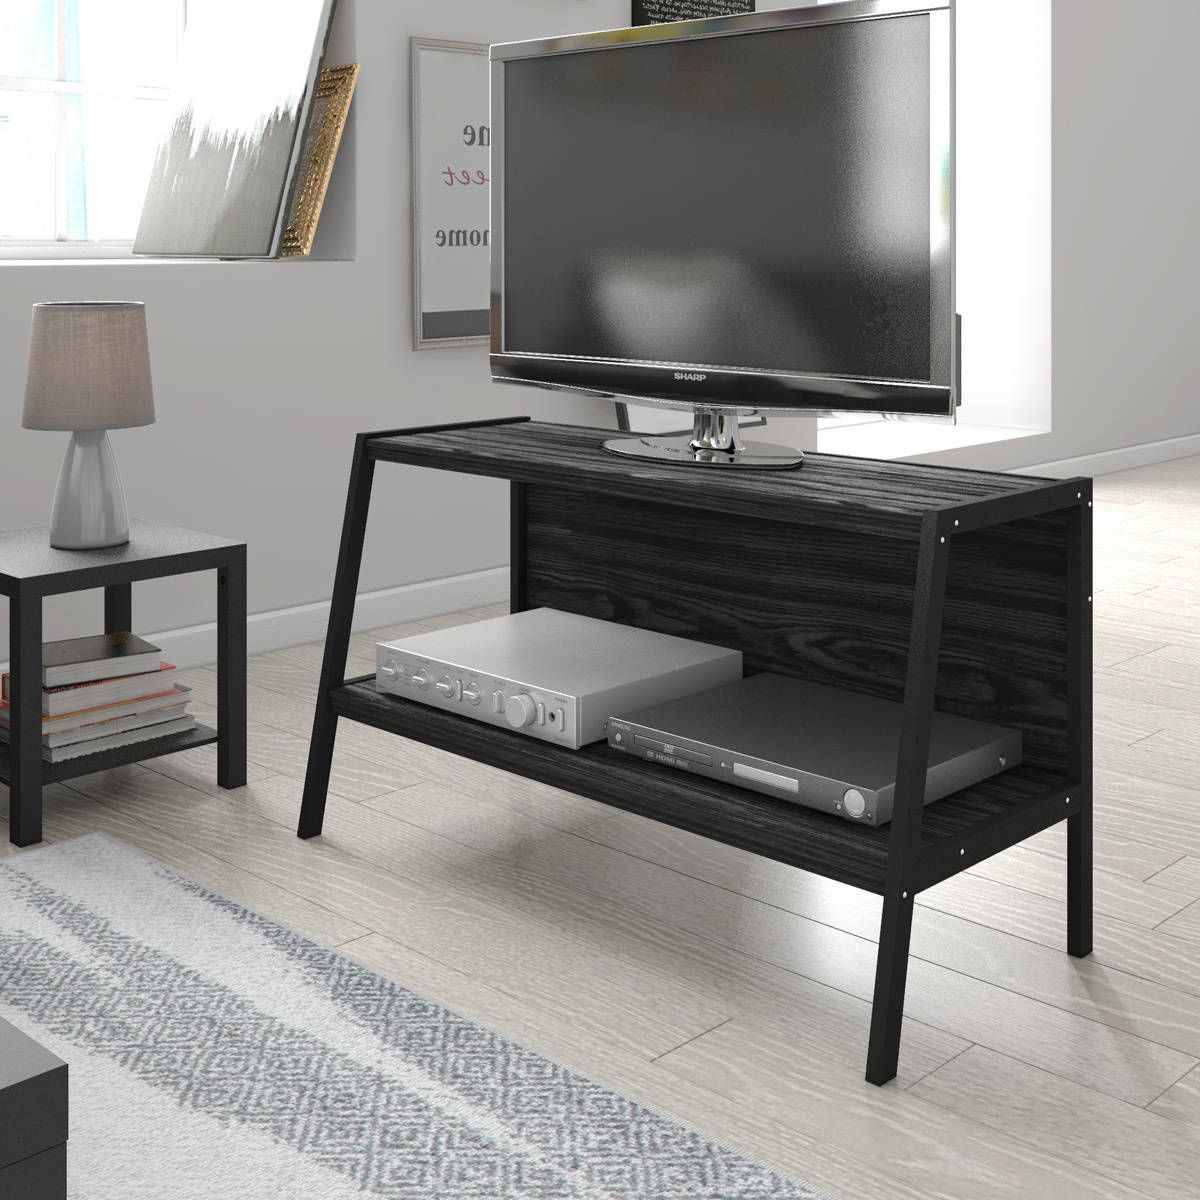 Porch u den wicker park potomac ladder tv stand black tv stands